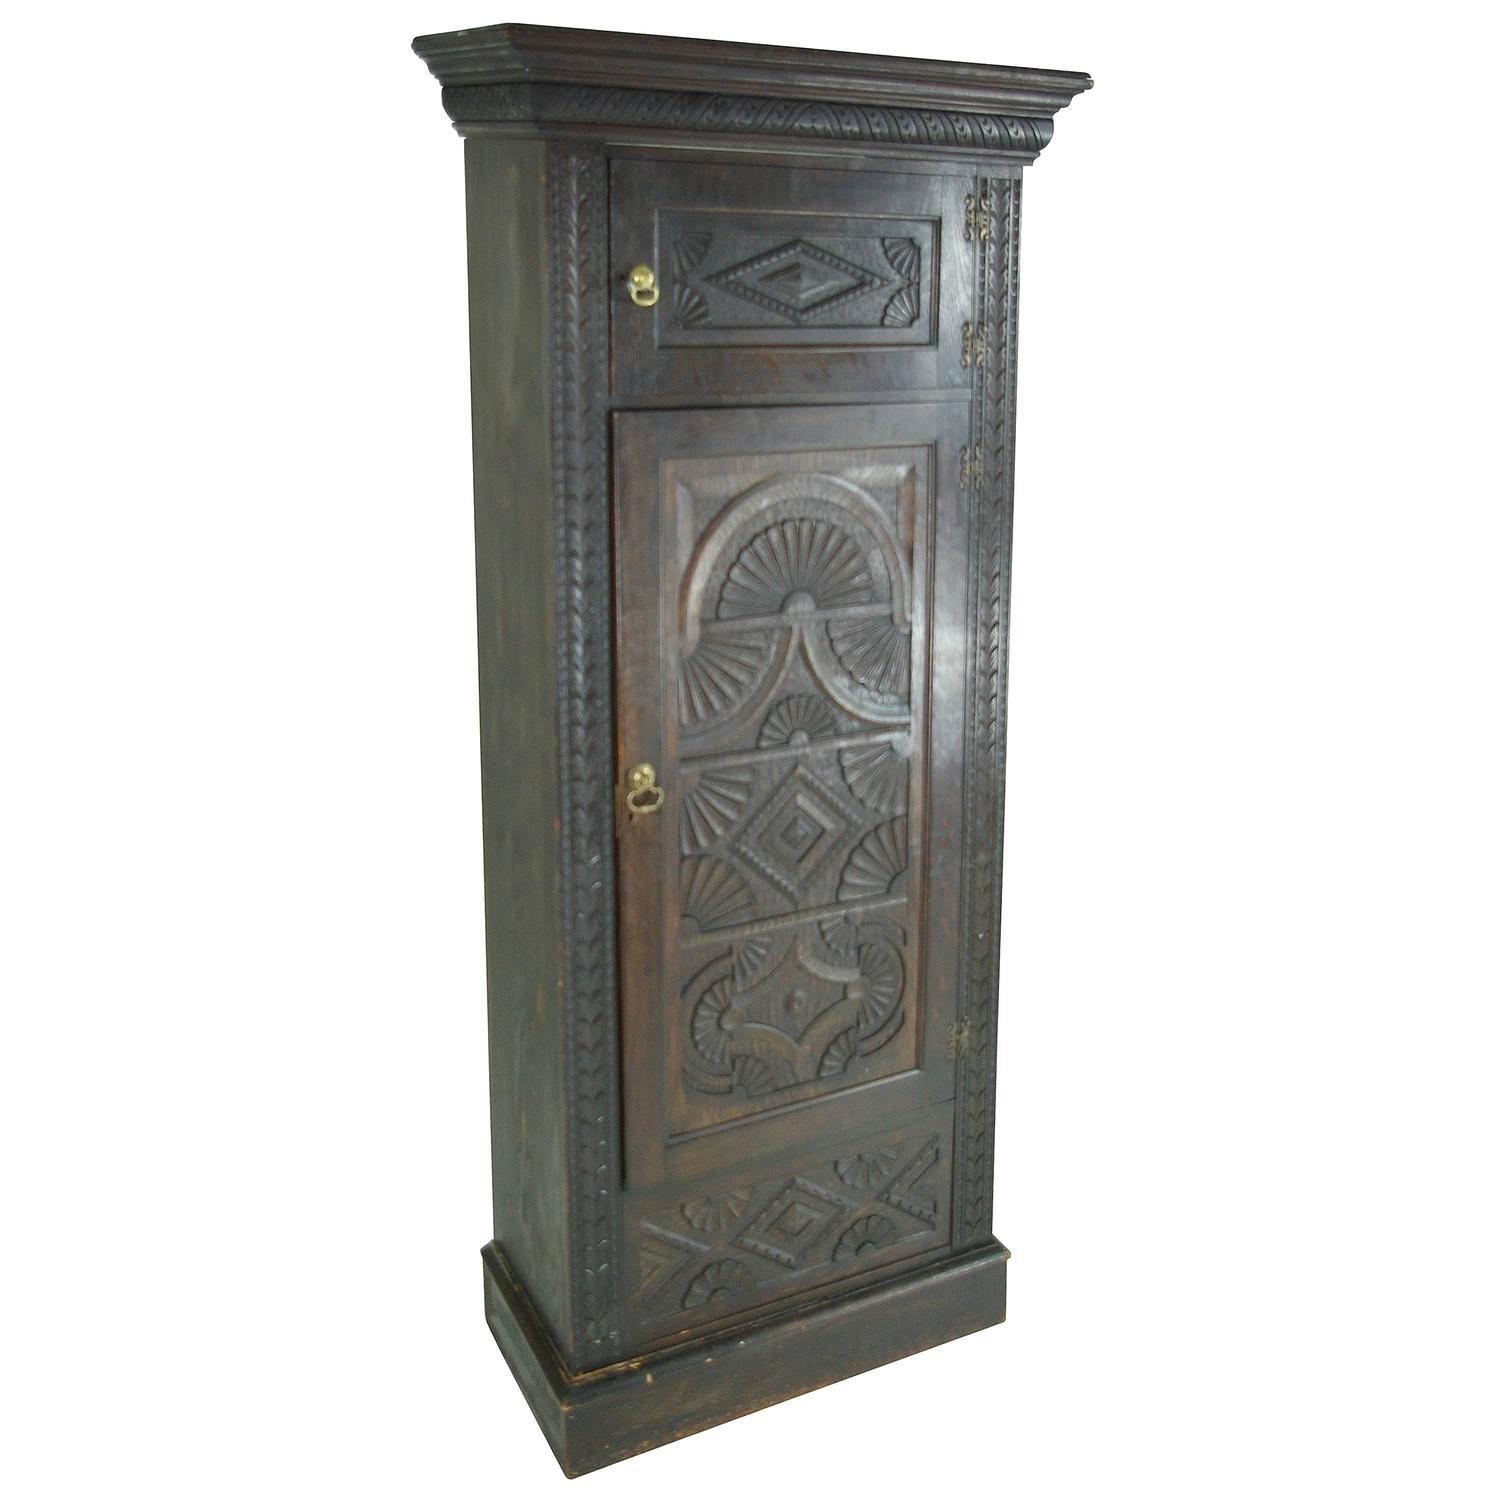 oak panelled single door armoire circa 1940 for sale at 1stdibs